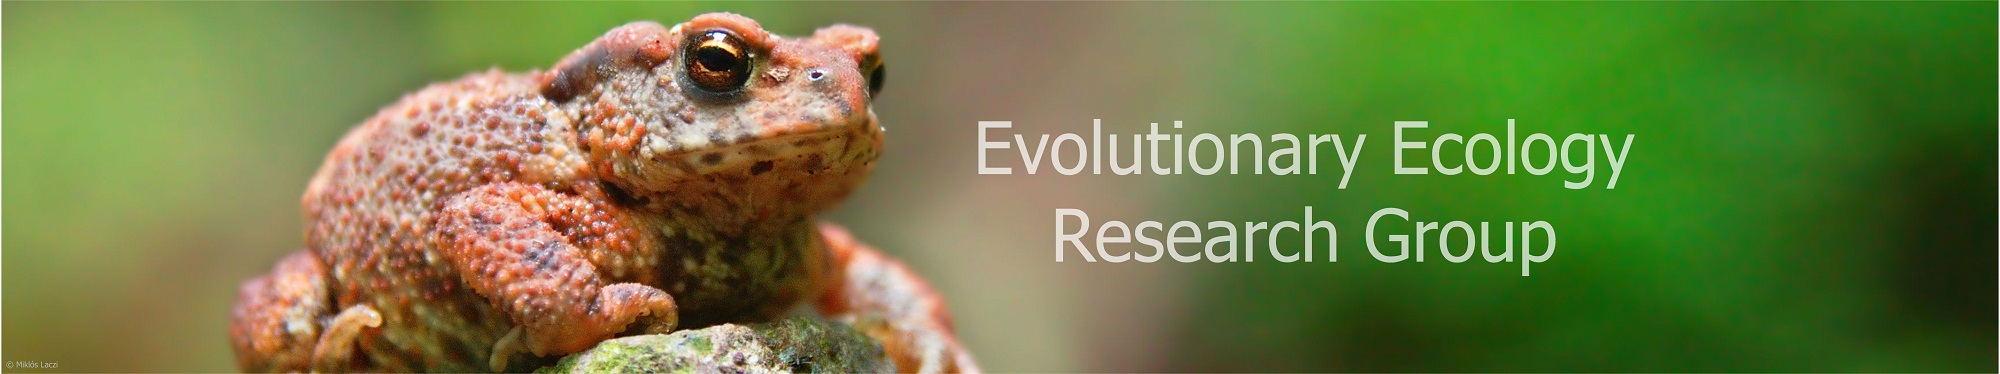 Evolutionary Ecology Research Group, Hungarian Academy of Sciences